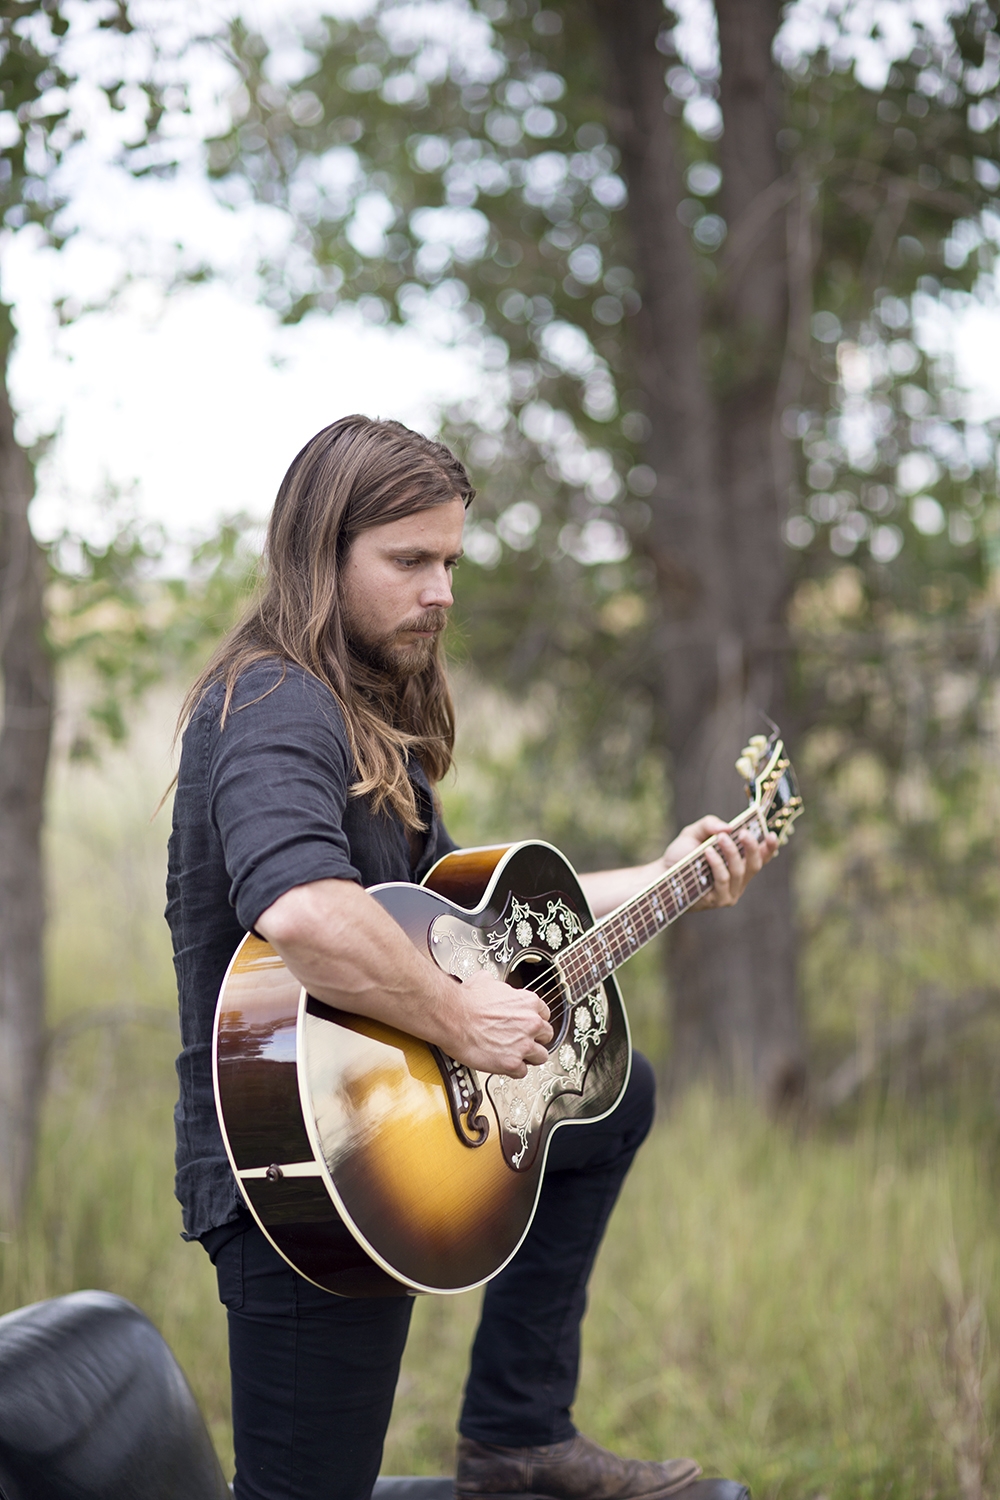 Rstumpf_LukasNelson_AustinWay